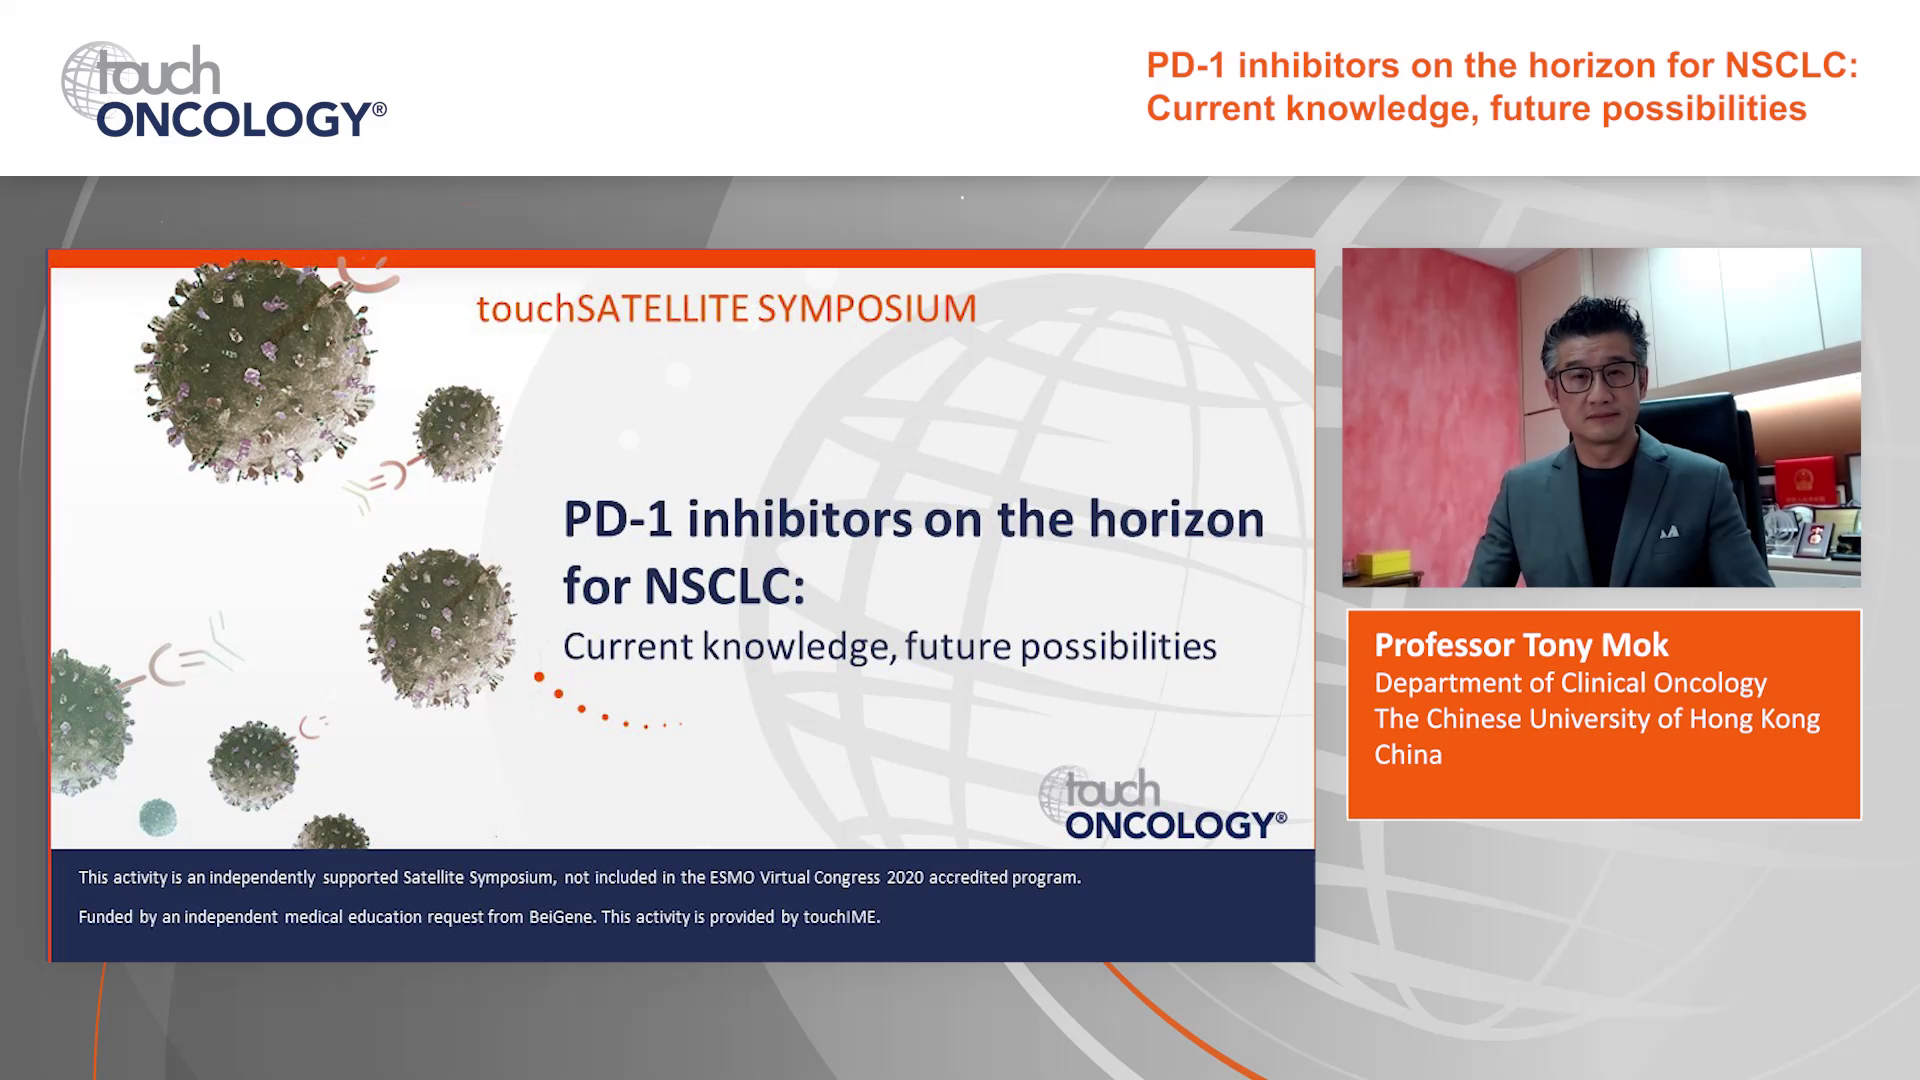 PD-1 inhibitors on the horizon for NSCLC: Current knowledge, future possibilities